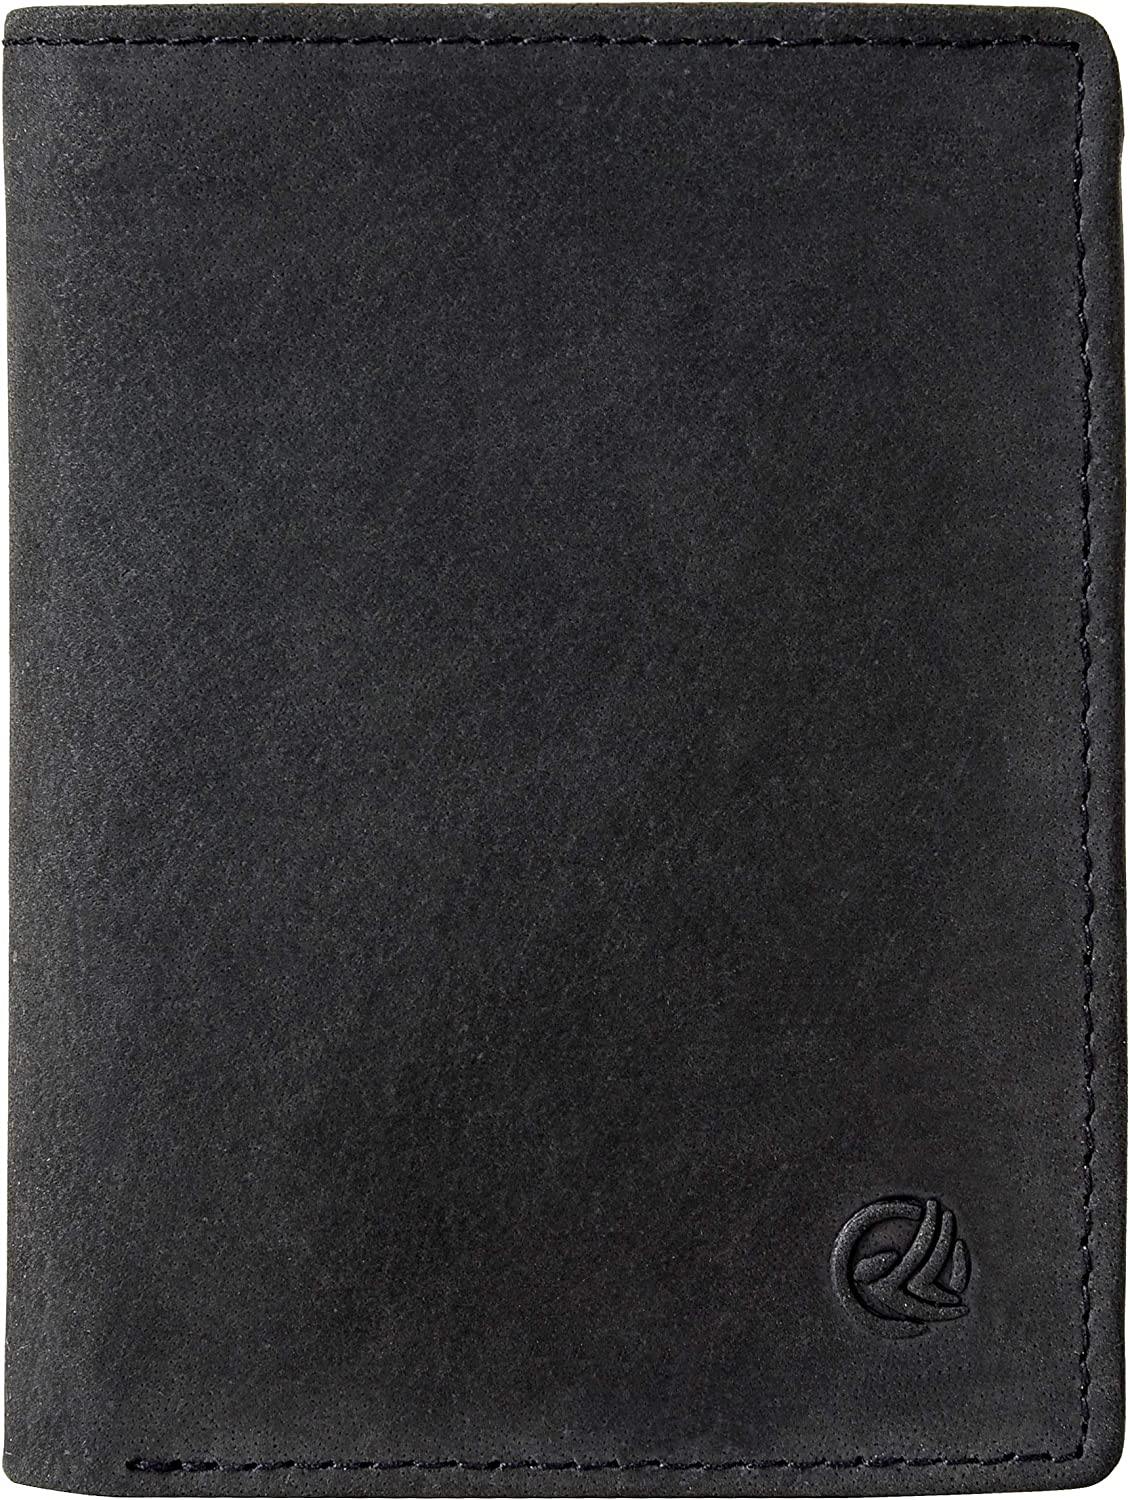 Beauty products Antonio Valeria Max 54% OFF Carl Leather Wallet